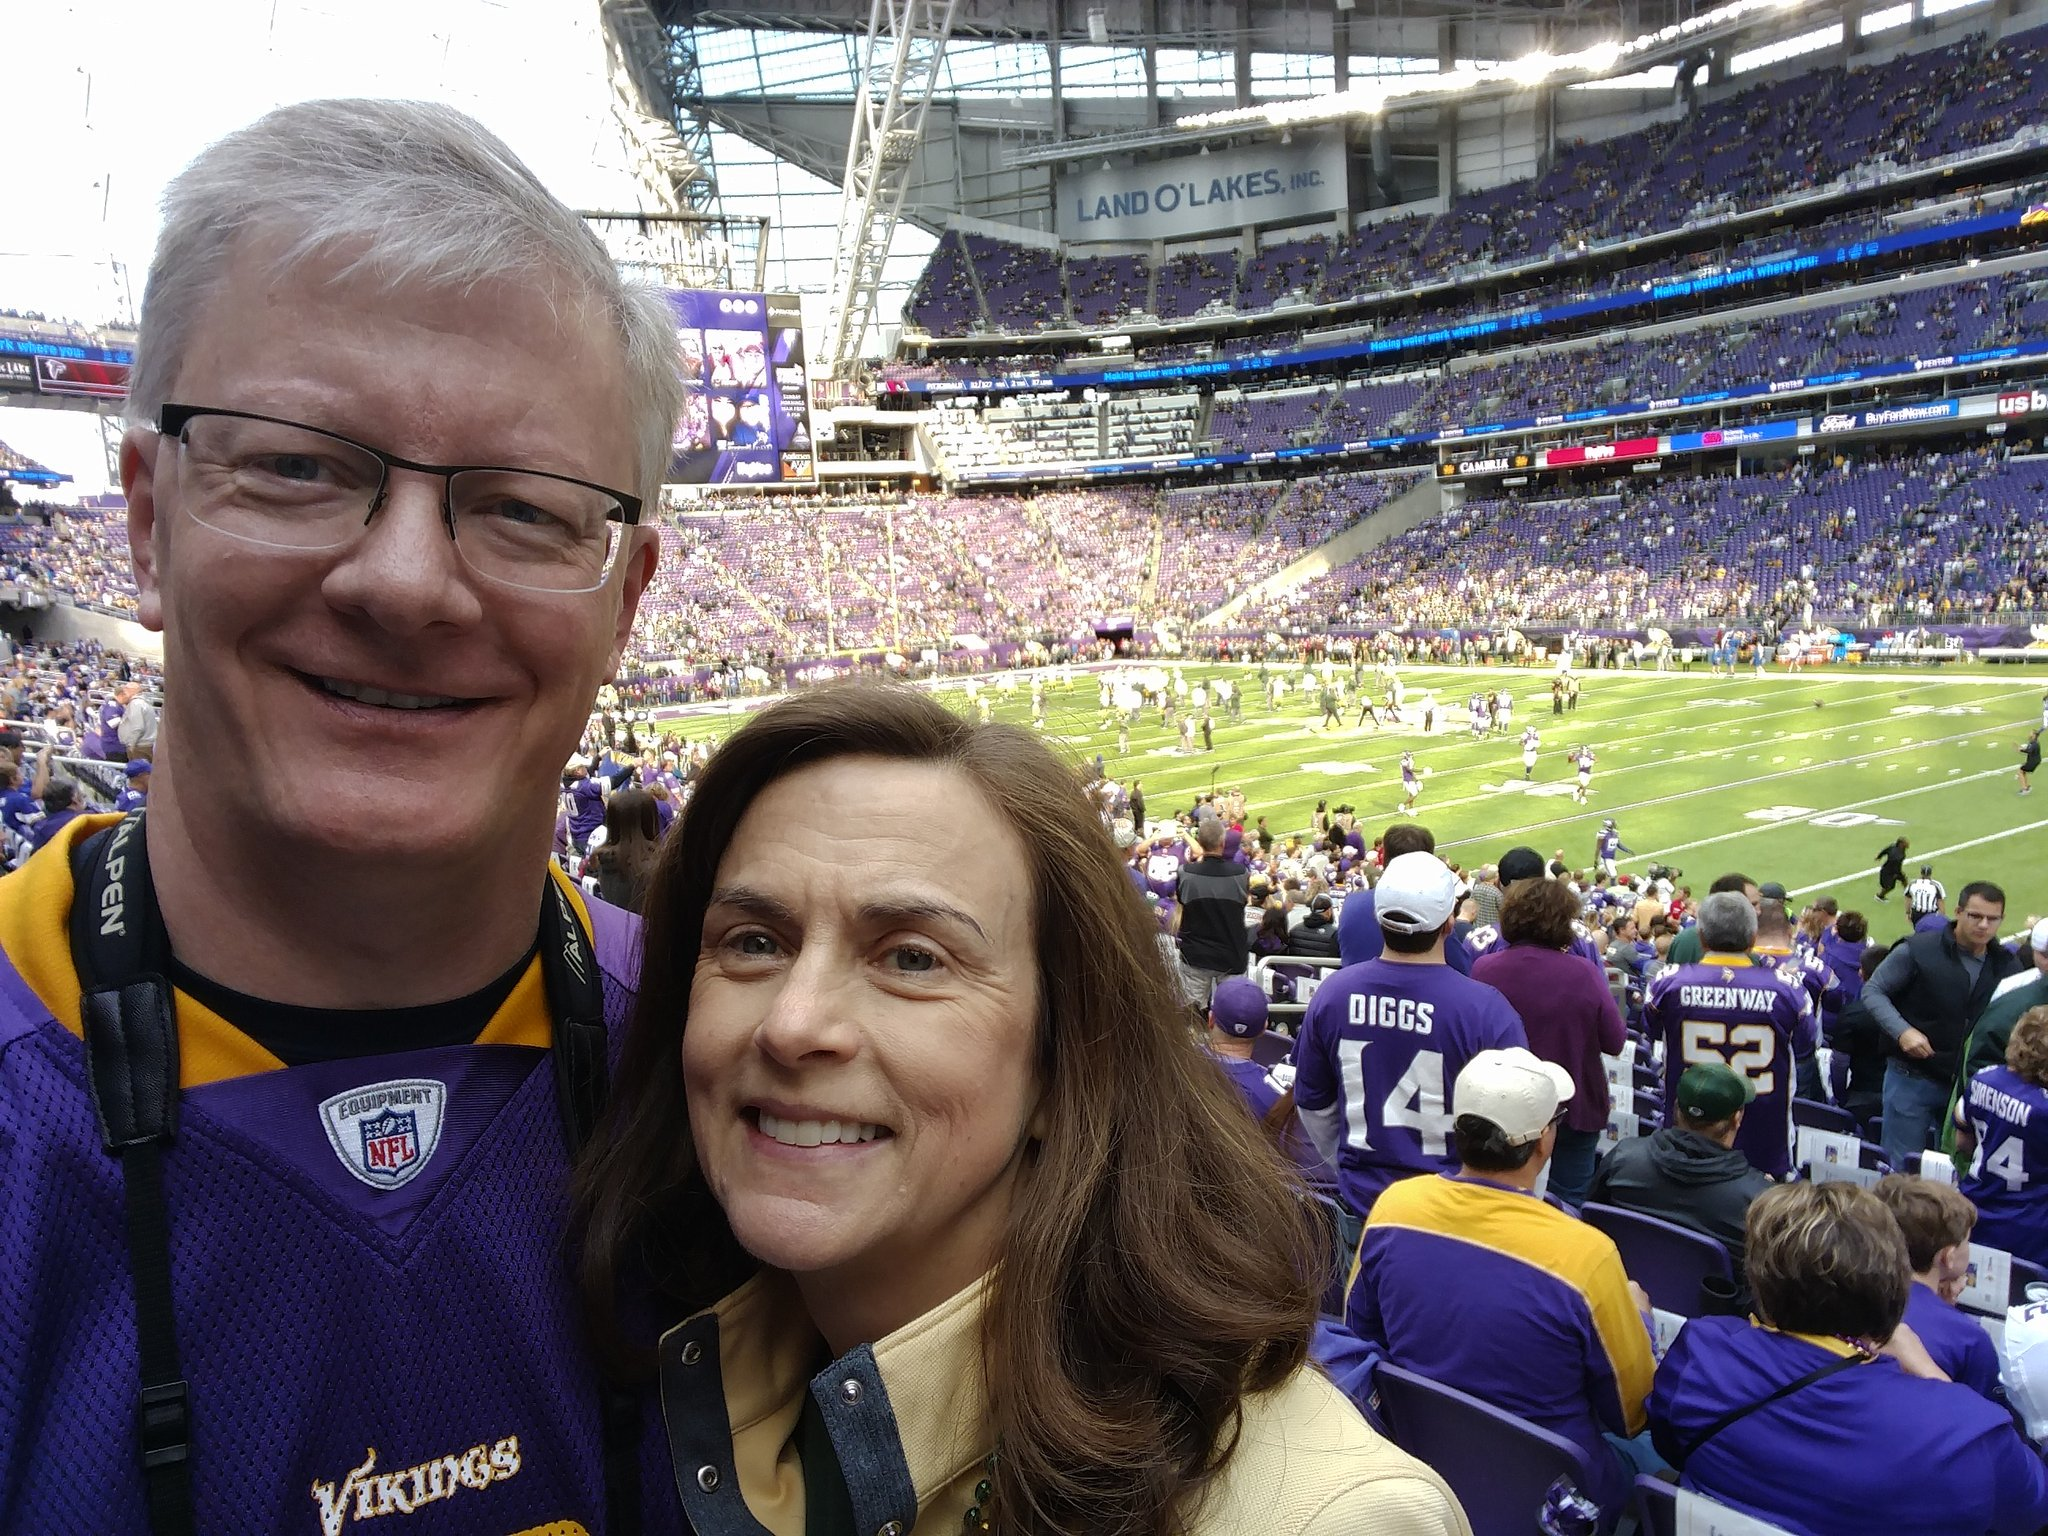 Kevin and his wife at a football game